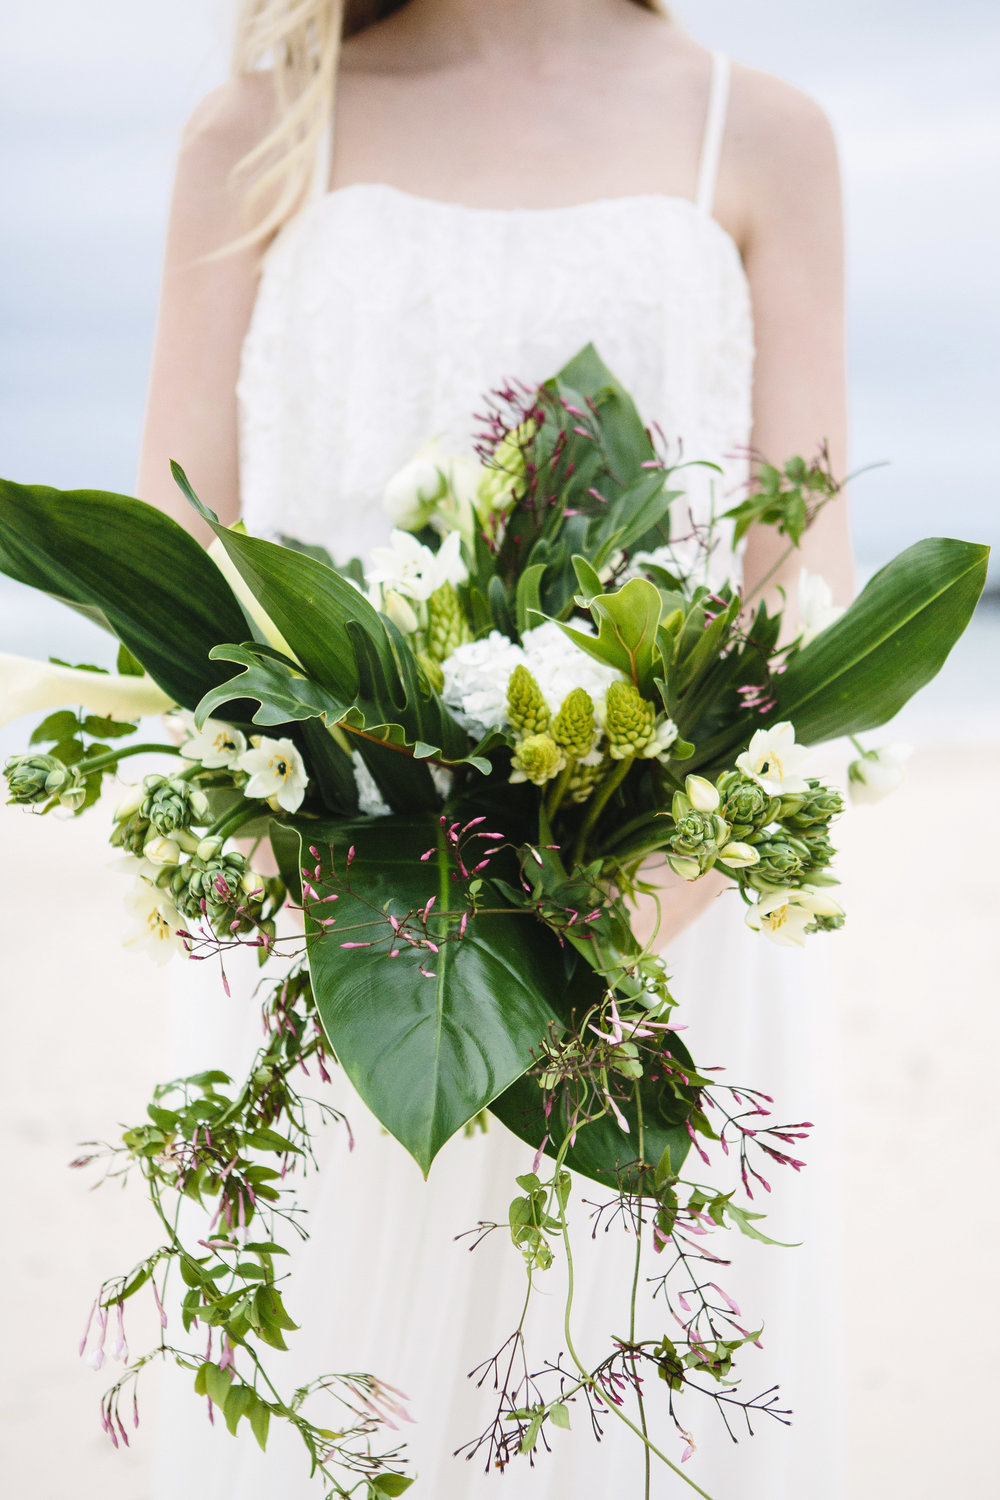 The trailing green foliage in this amazing bouquet by Wilde Flora combines modern and whimsical trends we are seeing in Australia currently.